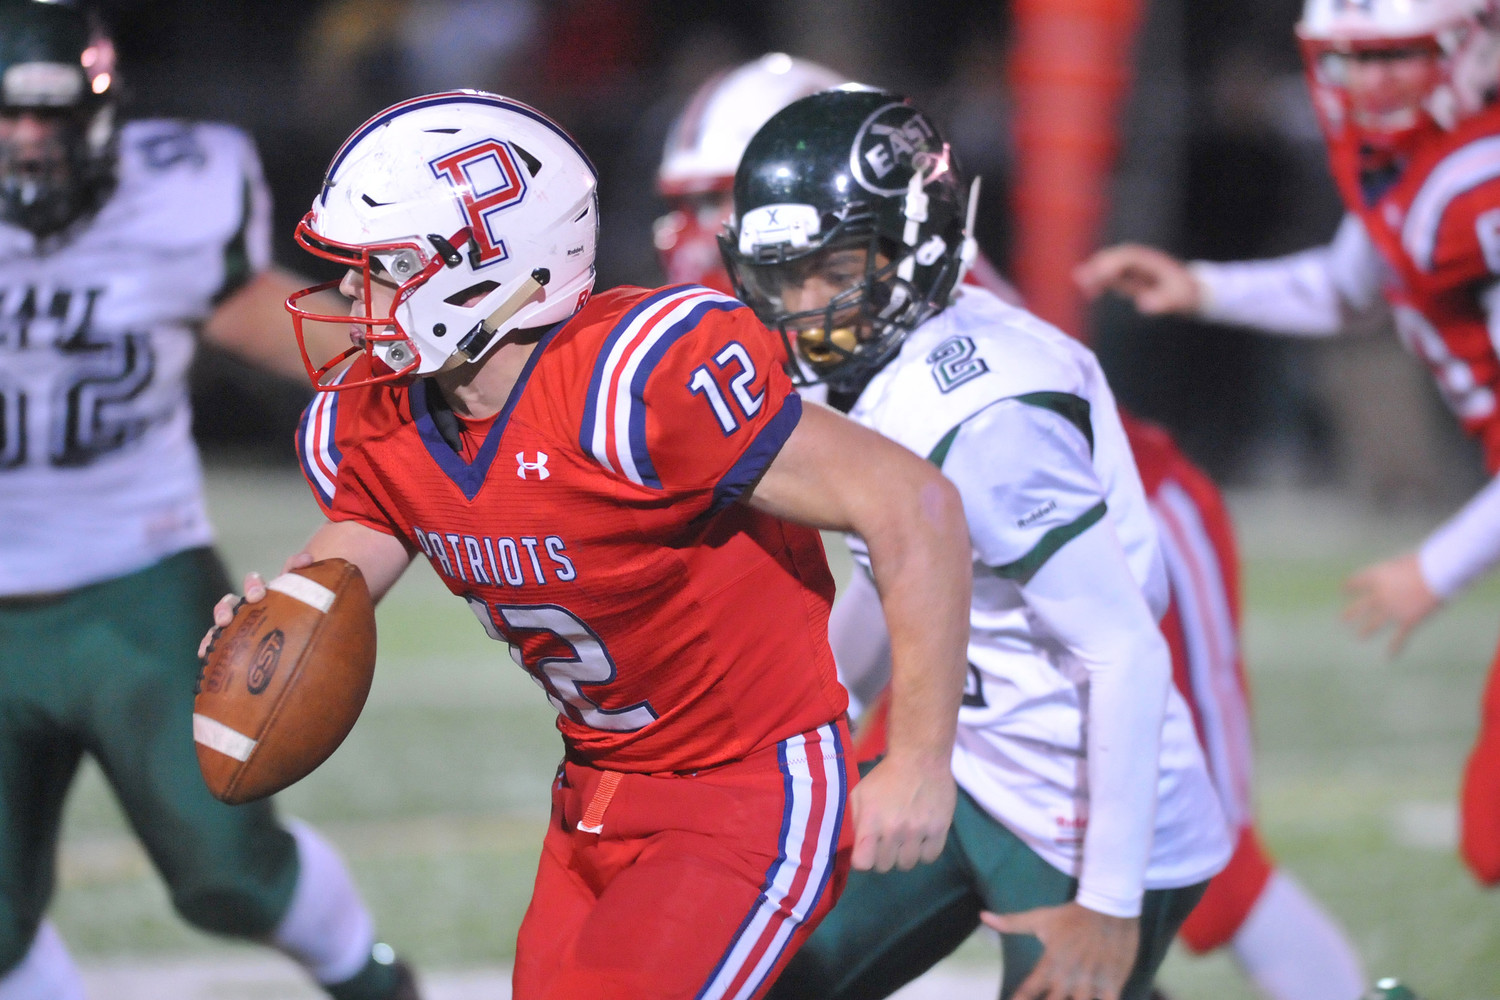 Portsmouth quarterback Kyle Bicho tries to evade the Cranston East pass rush late in the fourth quarter Saturday night.